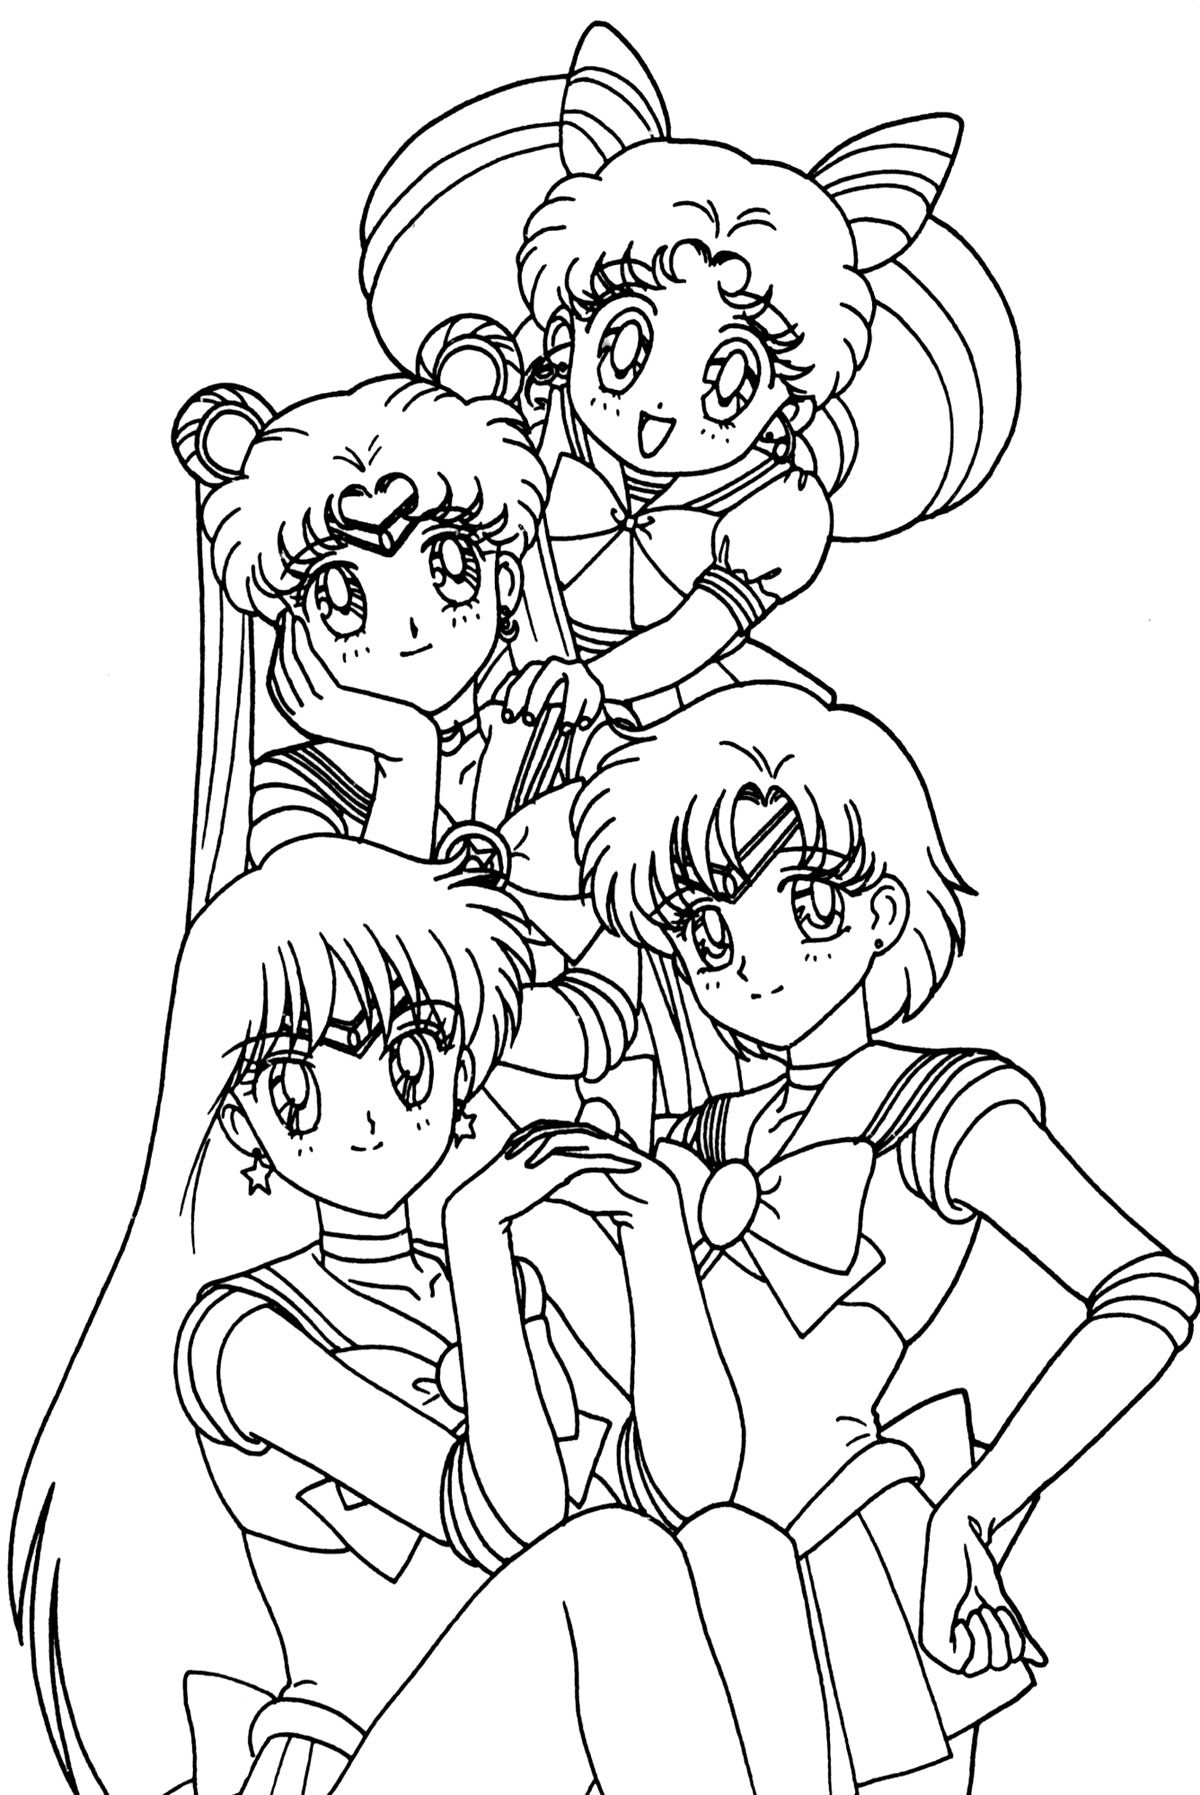 Co coloring pages of anime for teens - Beyond The Educational Virtues Coloring Sessions Allow Us The Adults A Little Peace